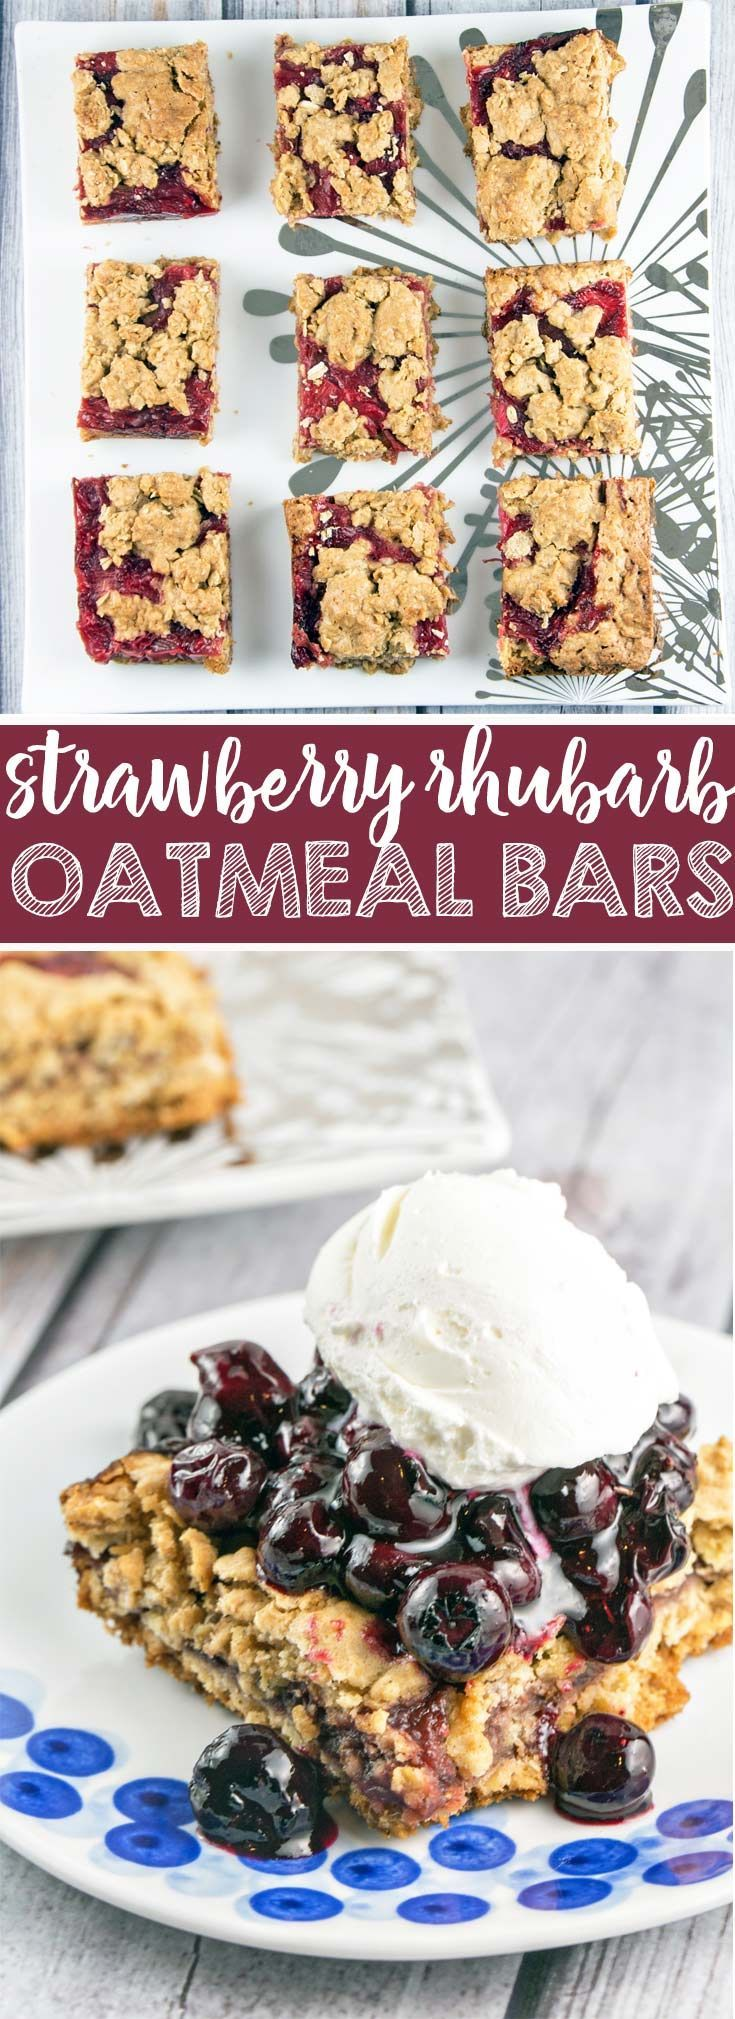 Strawberry Rhubarb Oatmeal Bars: It's rhubarb season - try these strawberry rhubarb oatmeal bars with a crunchy oatmeal cookie crust and a thick layer of fruit compote. Easier than a pie, but just as delicious! {Bunsen Burner Bakery} via @bnsnbrnrbakery